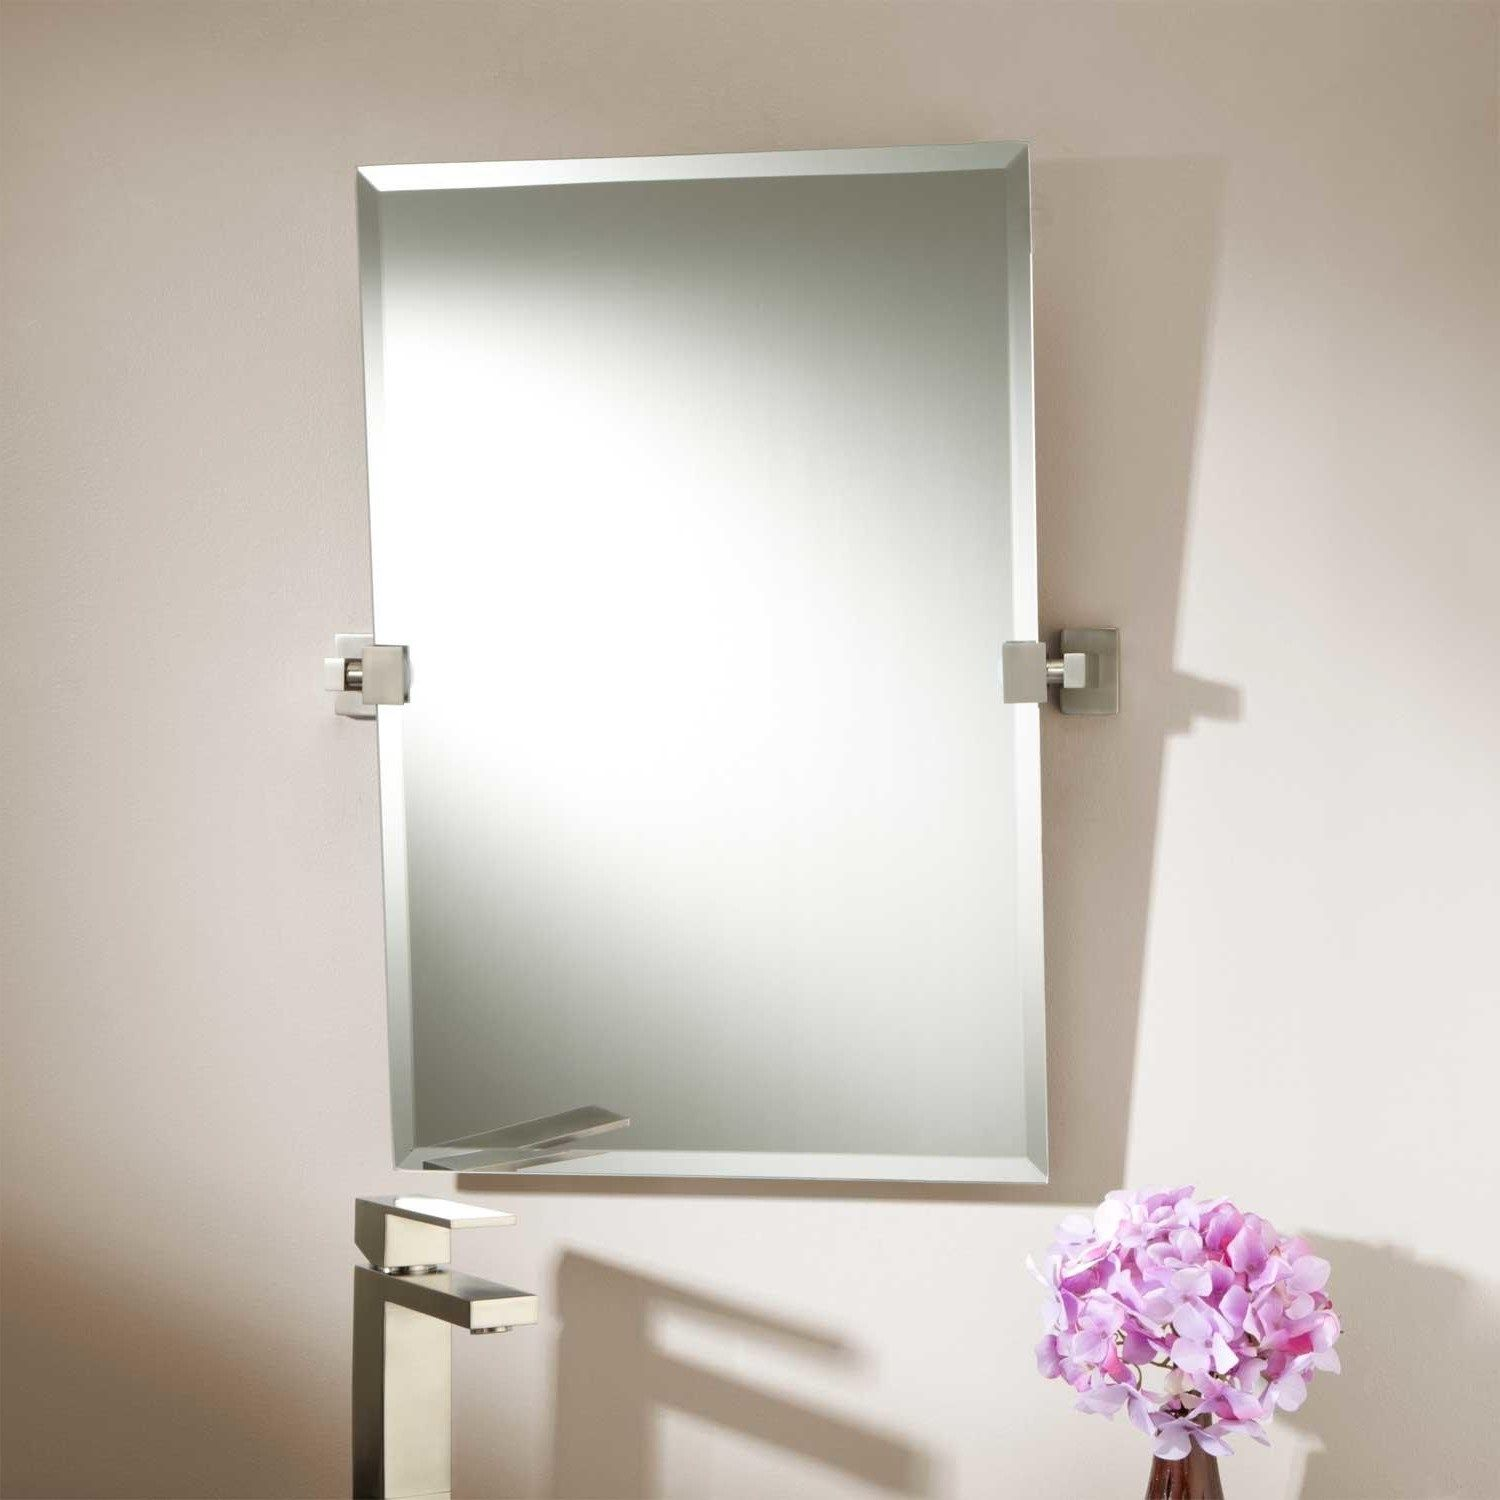 Bedroom, Light Up Mirrors Bathroom White Porcelain Vase With Plant ...